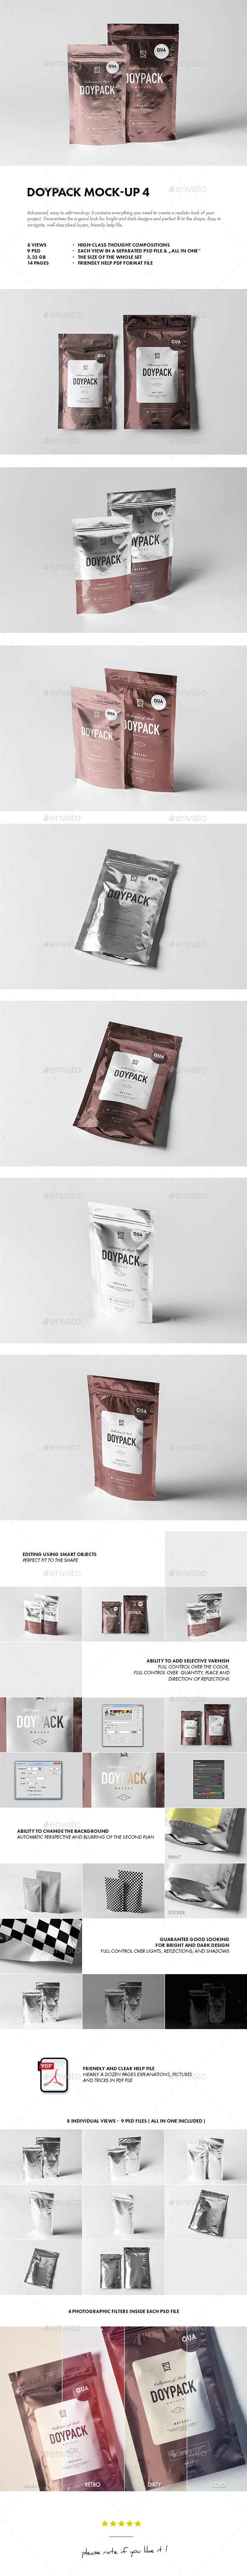 Doypack Mock-up 4 - Miscellaneous Packaging